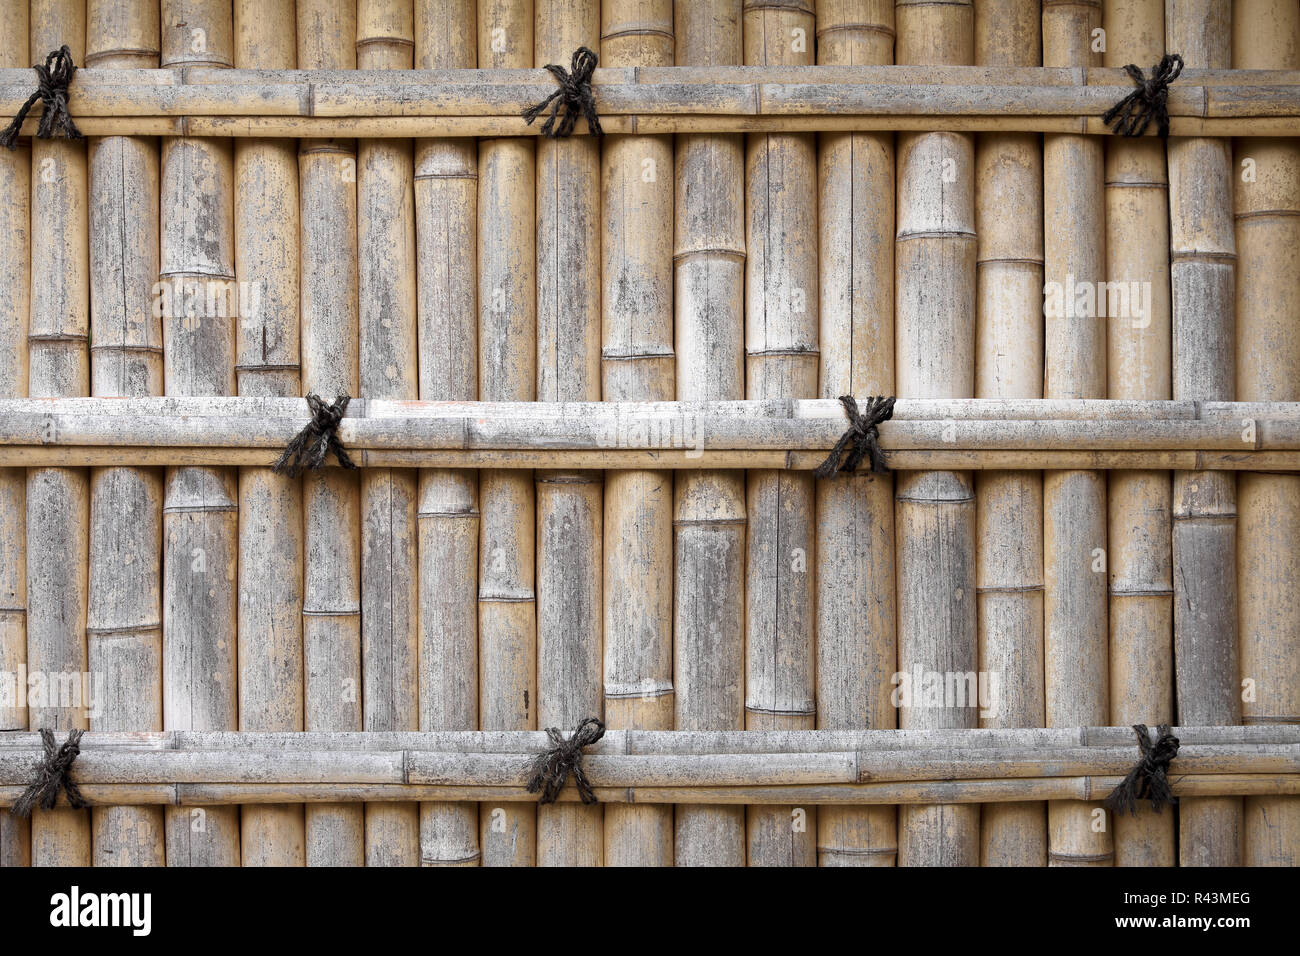 decorative gate in bamboo fence stock image image of.htm japanese bamboo fence stock photos   japanese bamboo fence stock  japanese bamboo fence stock photos